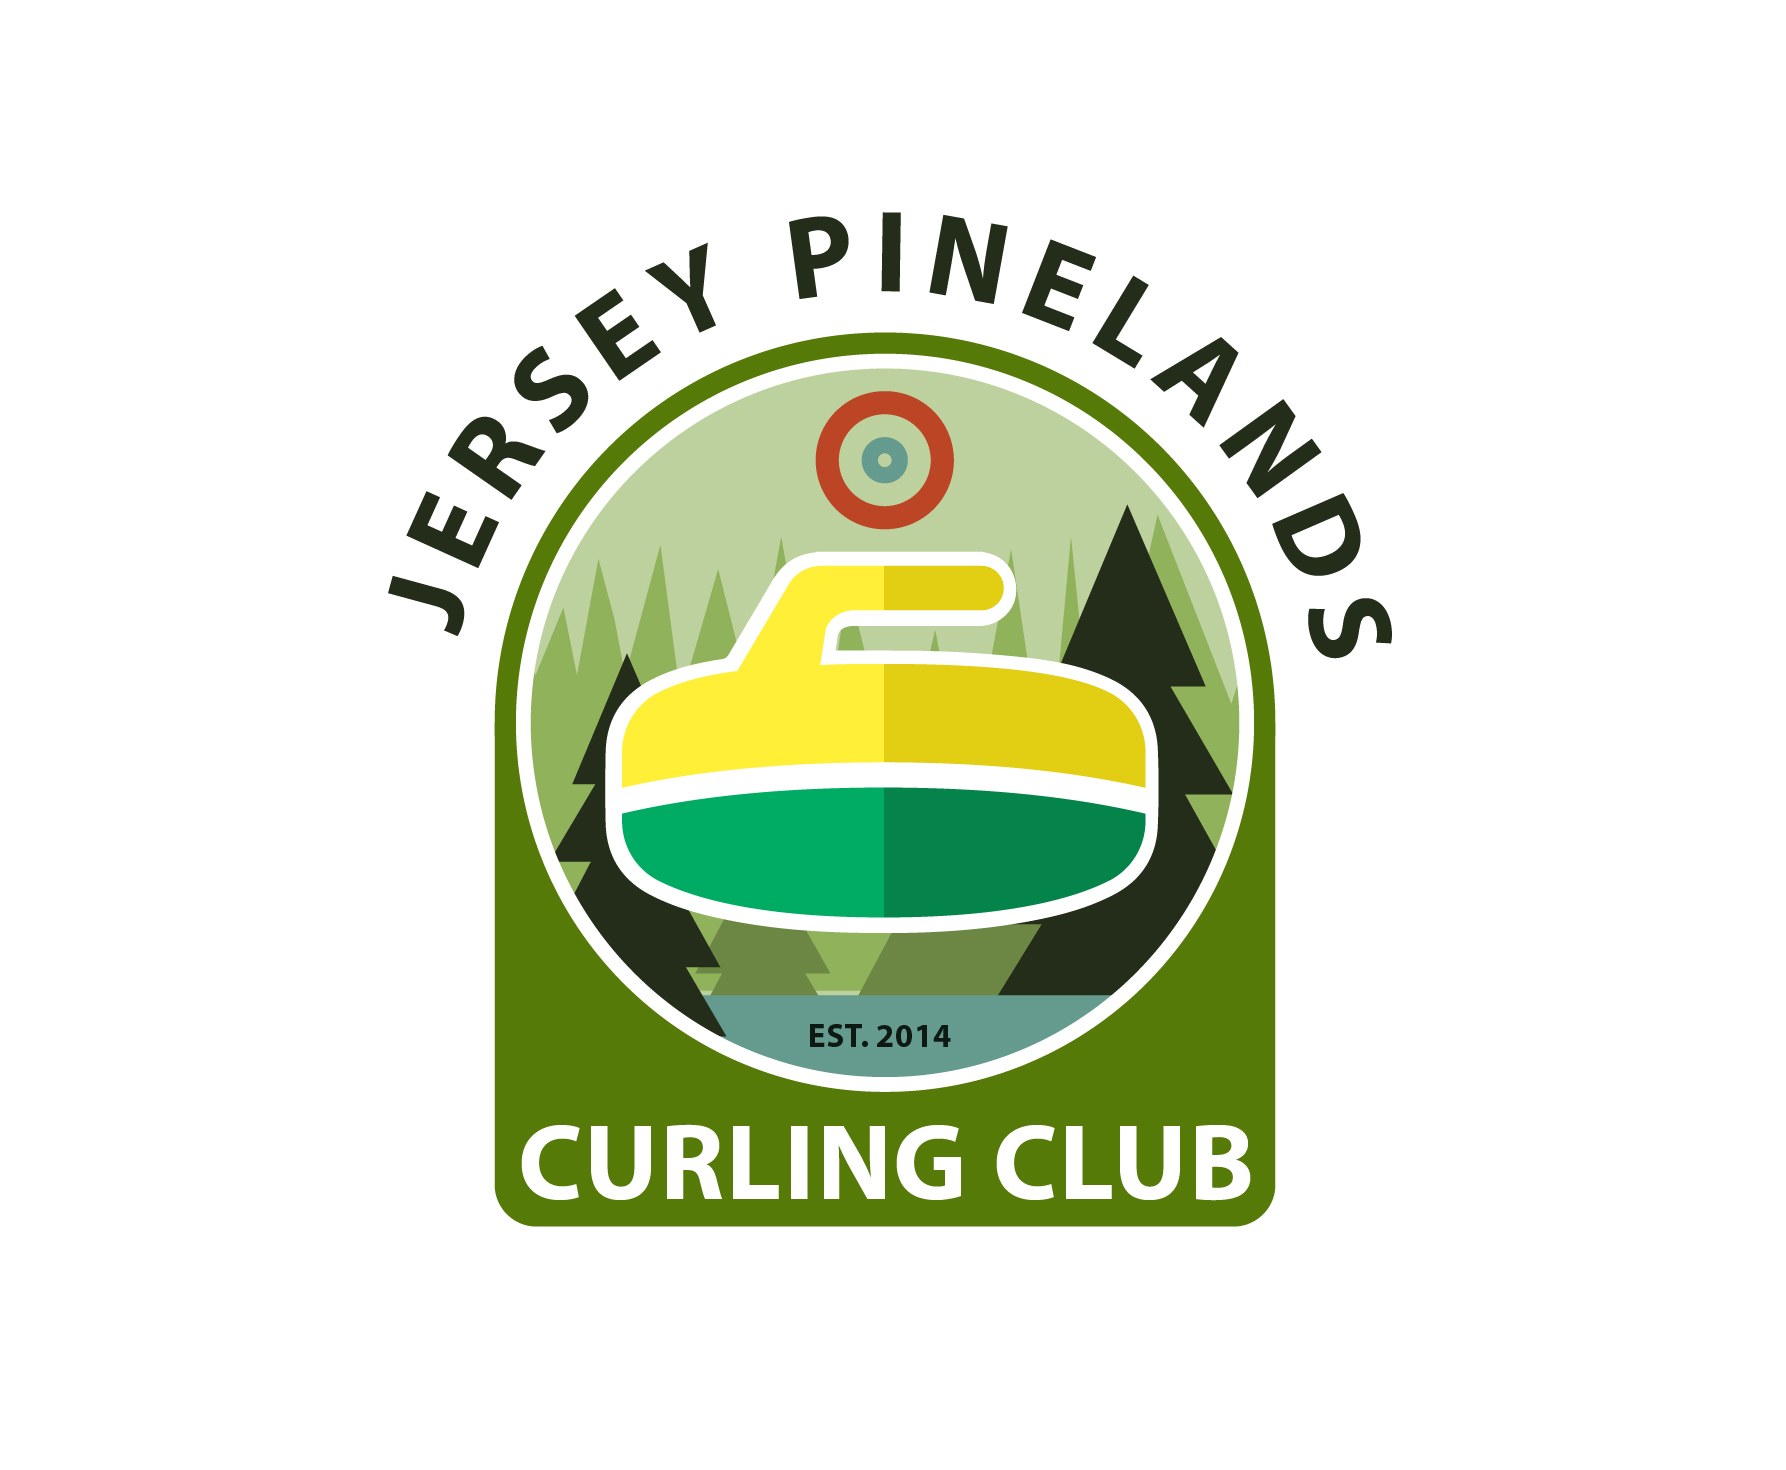 Jersey-Pinelands-Curling-Club-Logo-5-Green+Yellow-01